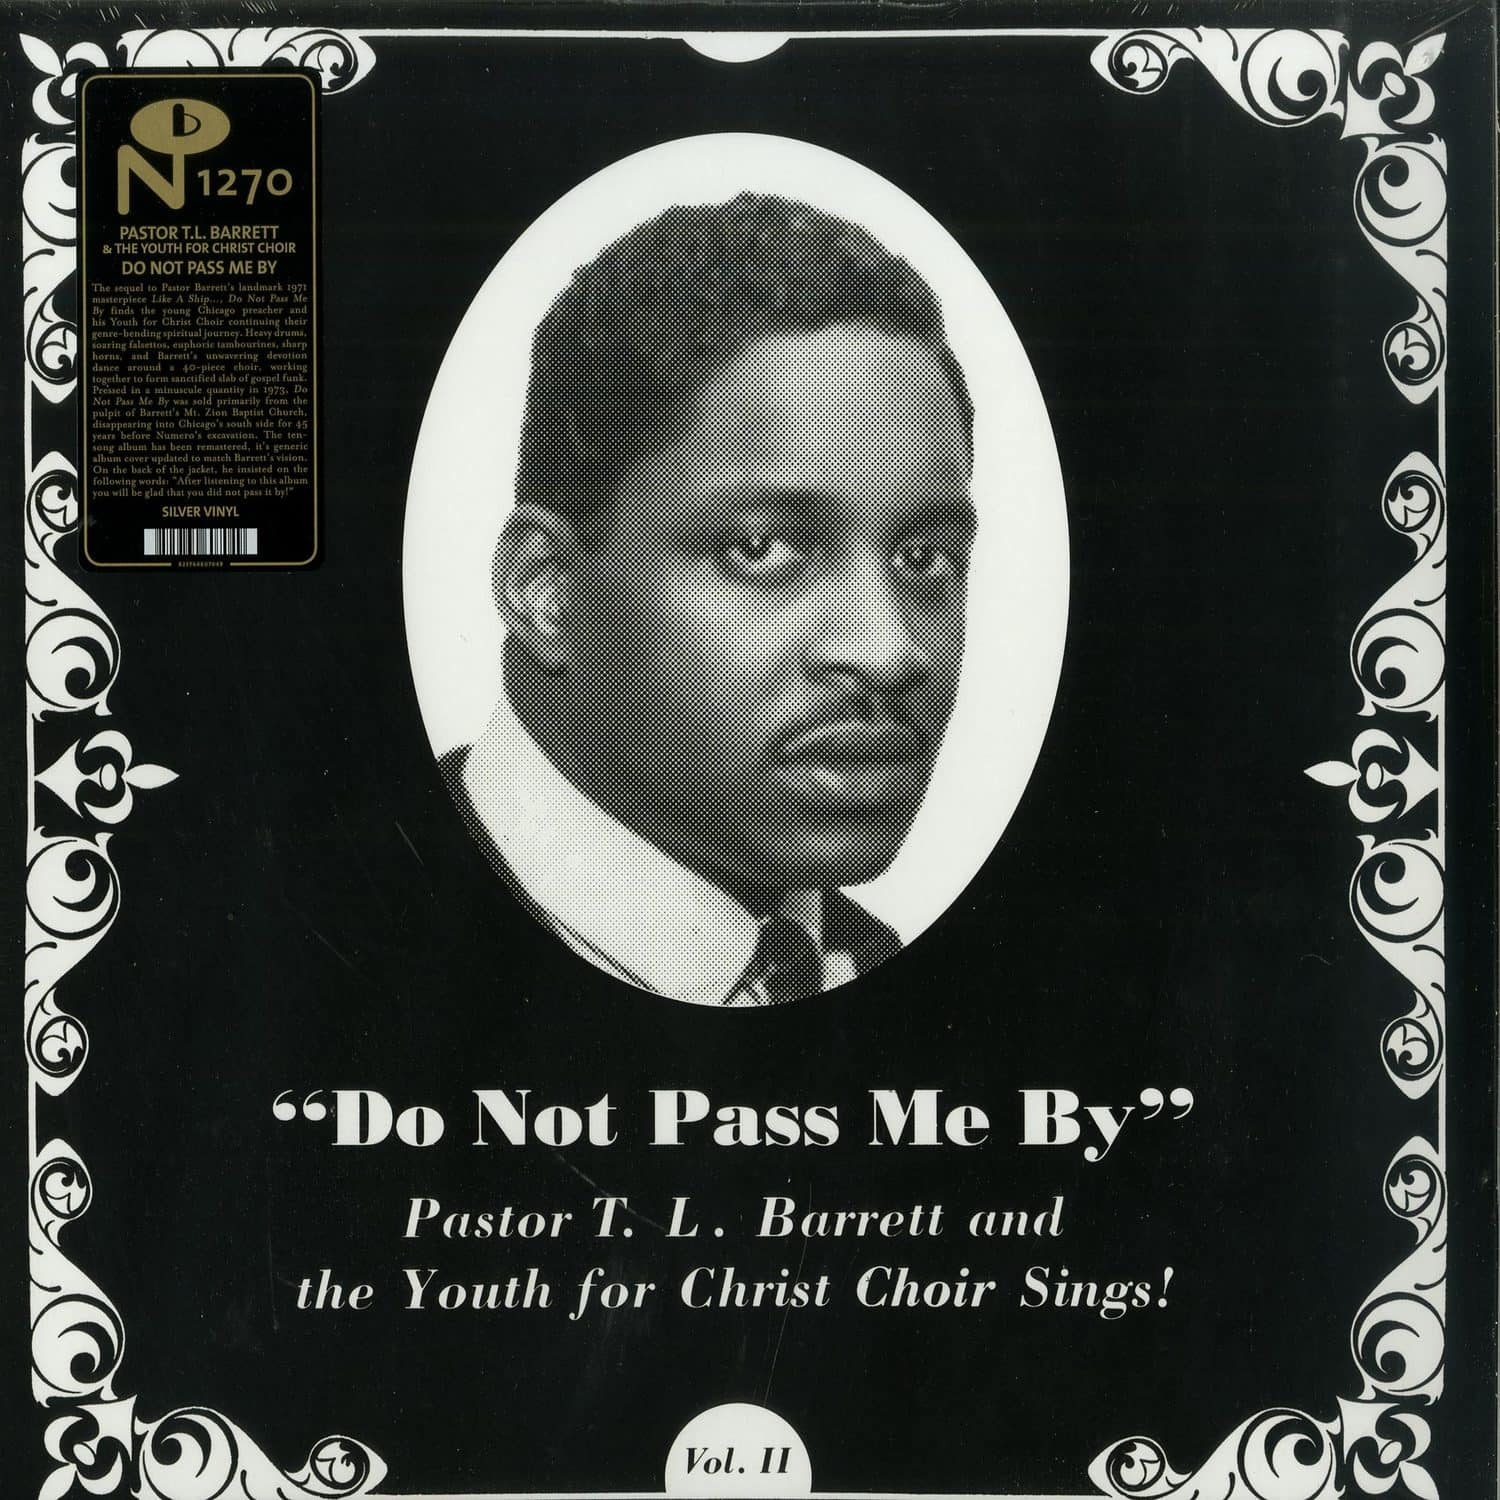 Pastor T.L. Barrett and The Youth for Christ Choir - DO NOT PASS ME BY VOL. II